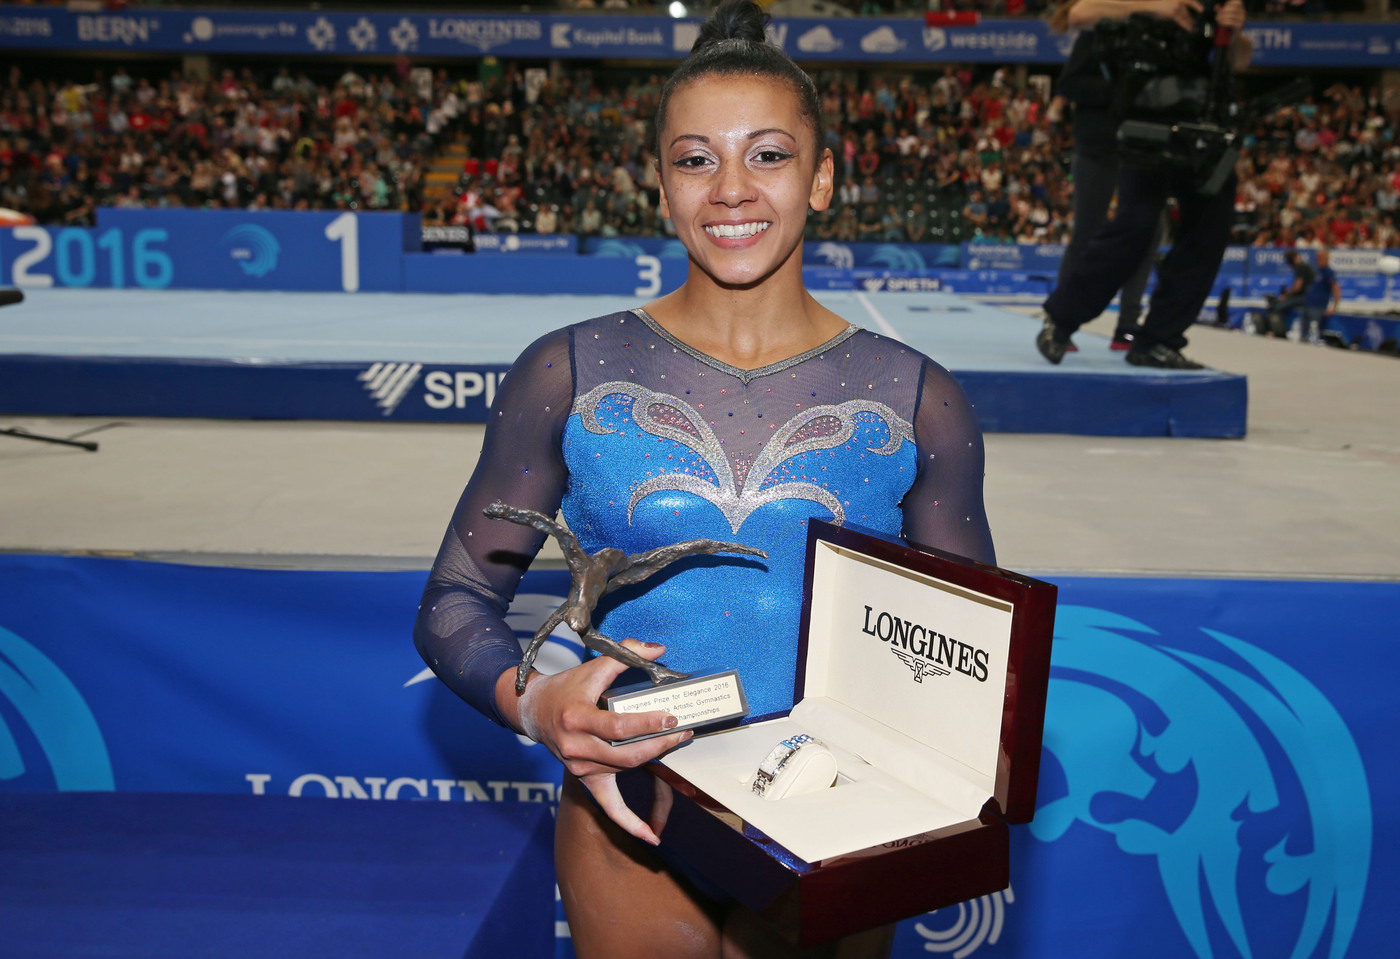 Longines Gymnastics Event: Longines European Men's and Women's Artistic Gymnastics Championships 2016 2